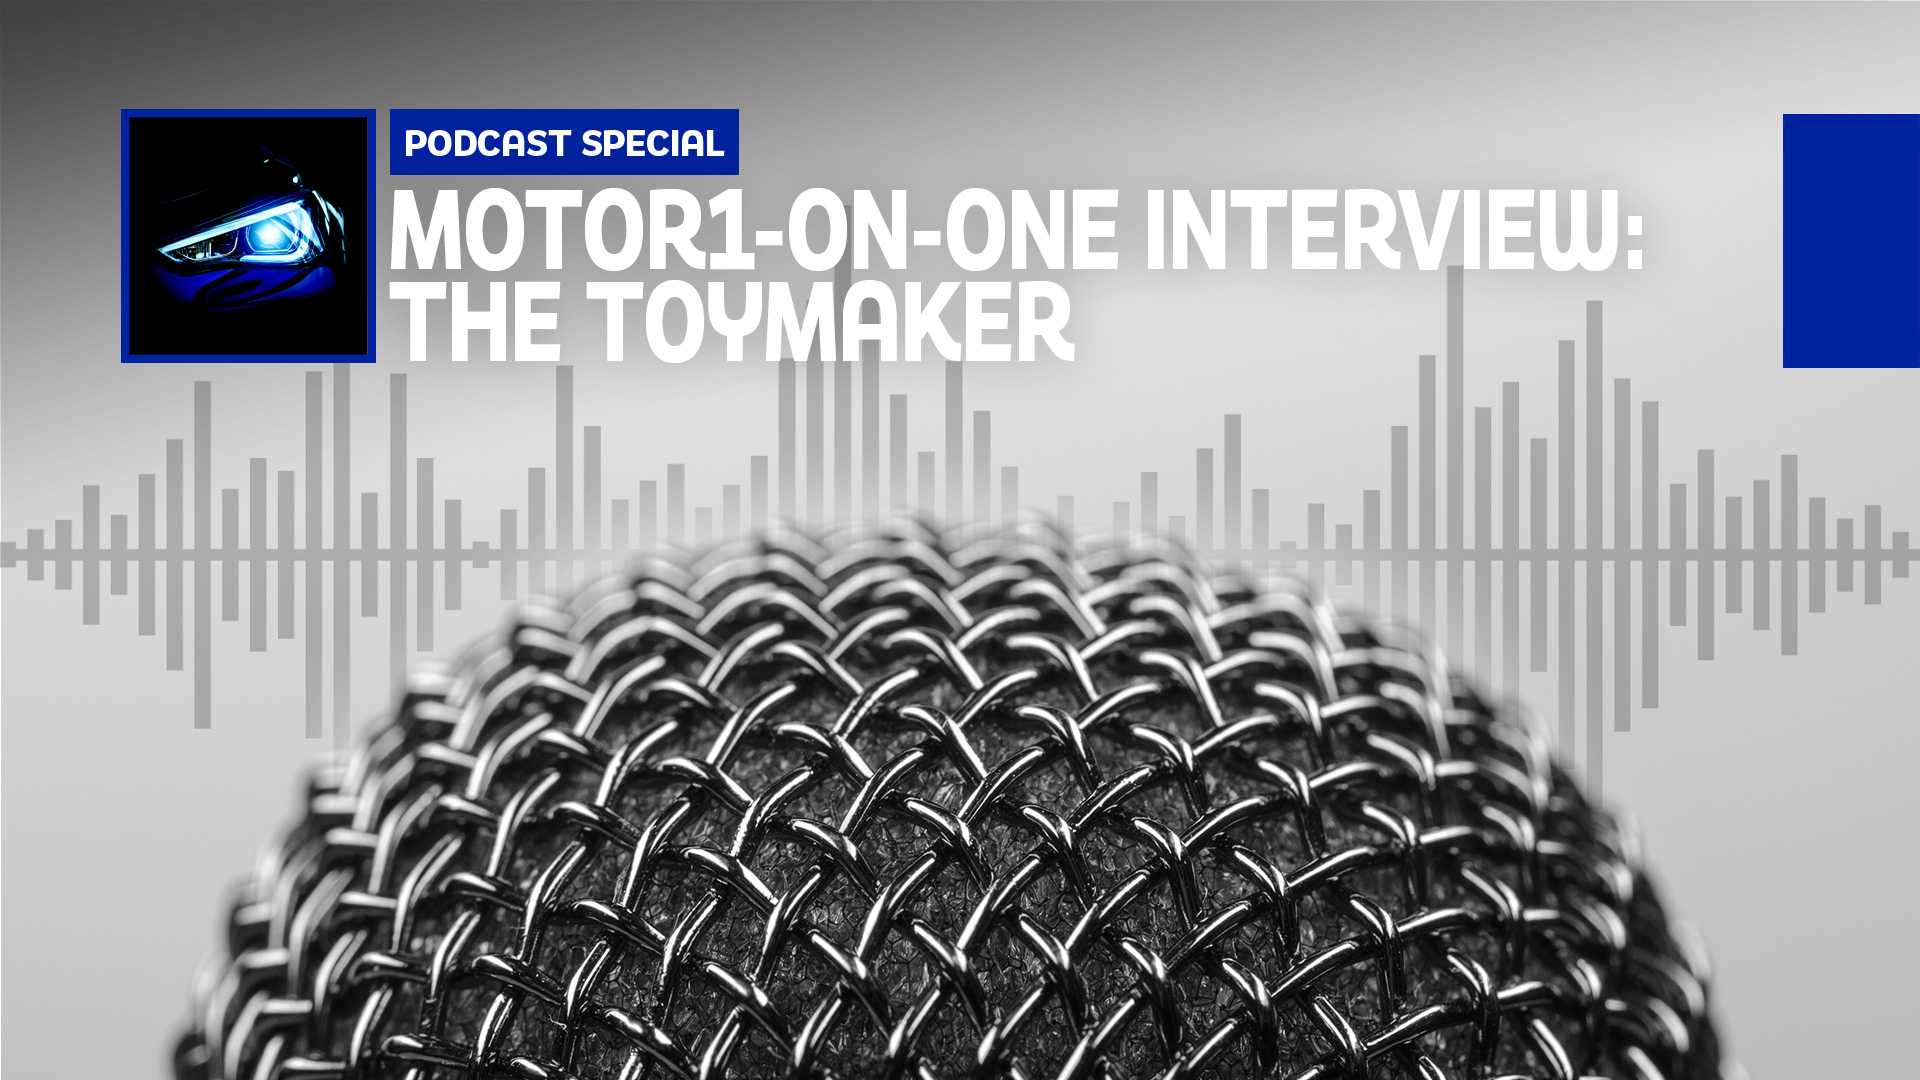 The Toymaker Goes Motor1-On-One With Us In New Podcast